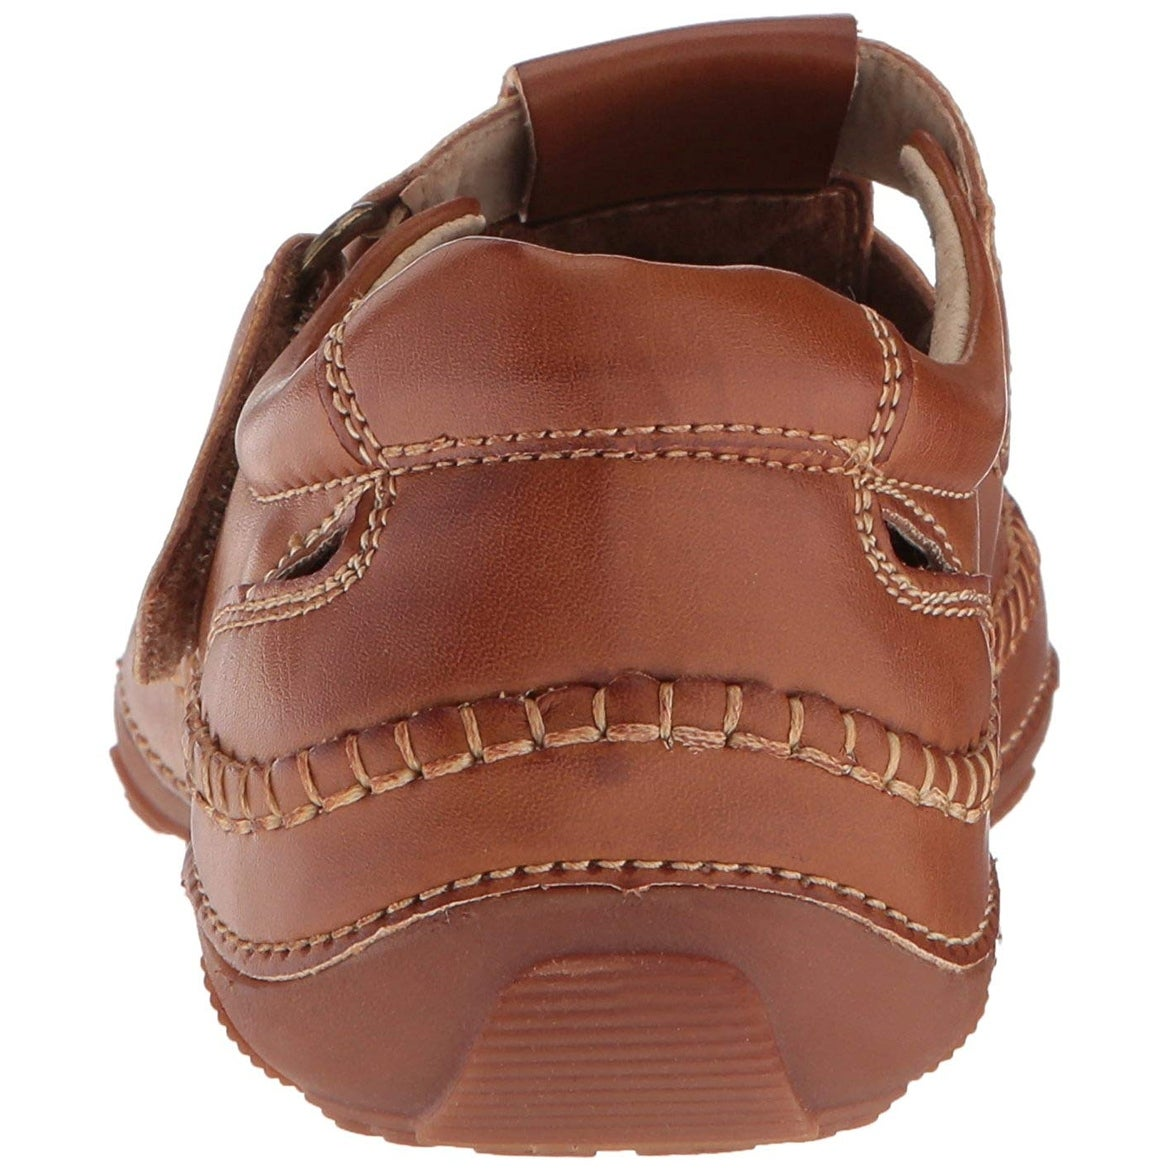 ae02f8f43c62 Shop GBX Mens Sentaur Closed Toe Fisherman Sandals - Free Shipping On  Orders Over  45 - Overstock - 22810598